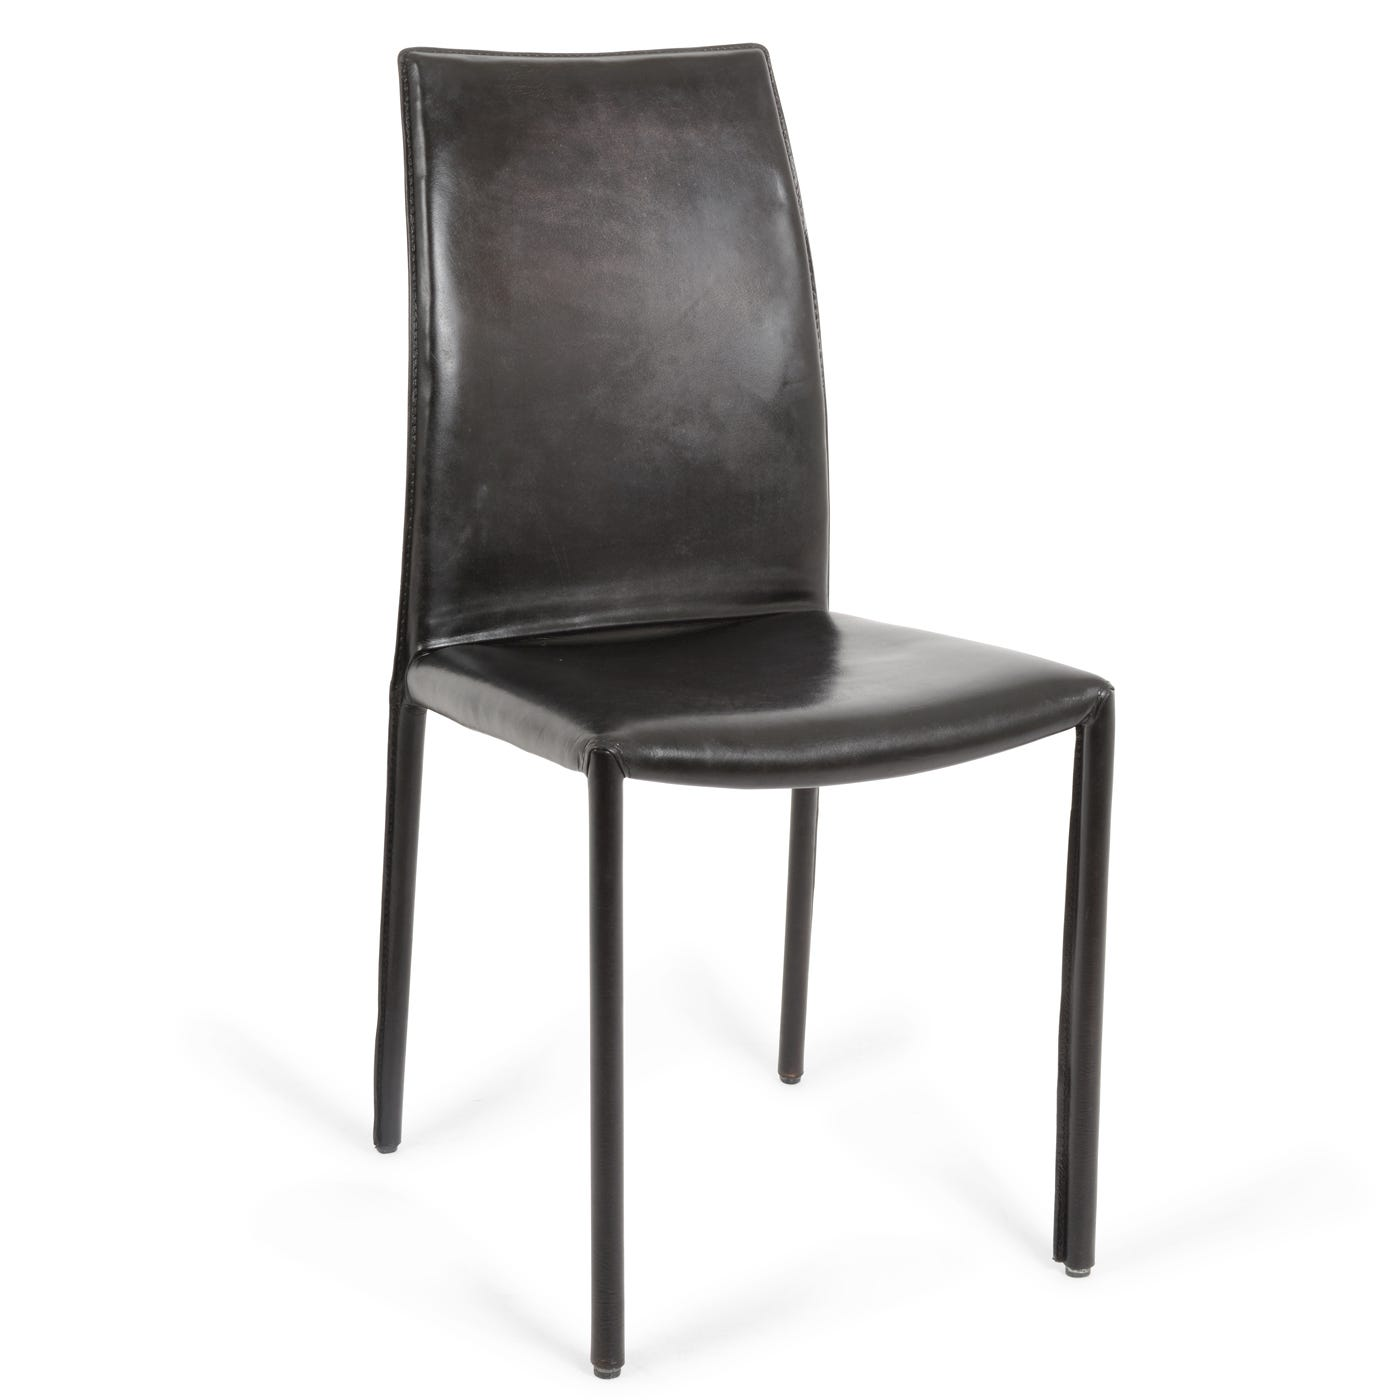 leather side chairs. Buffalo Side Chair In Black Leather Chairs